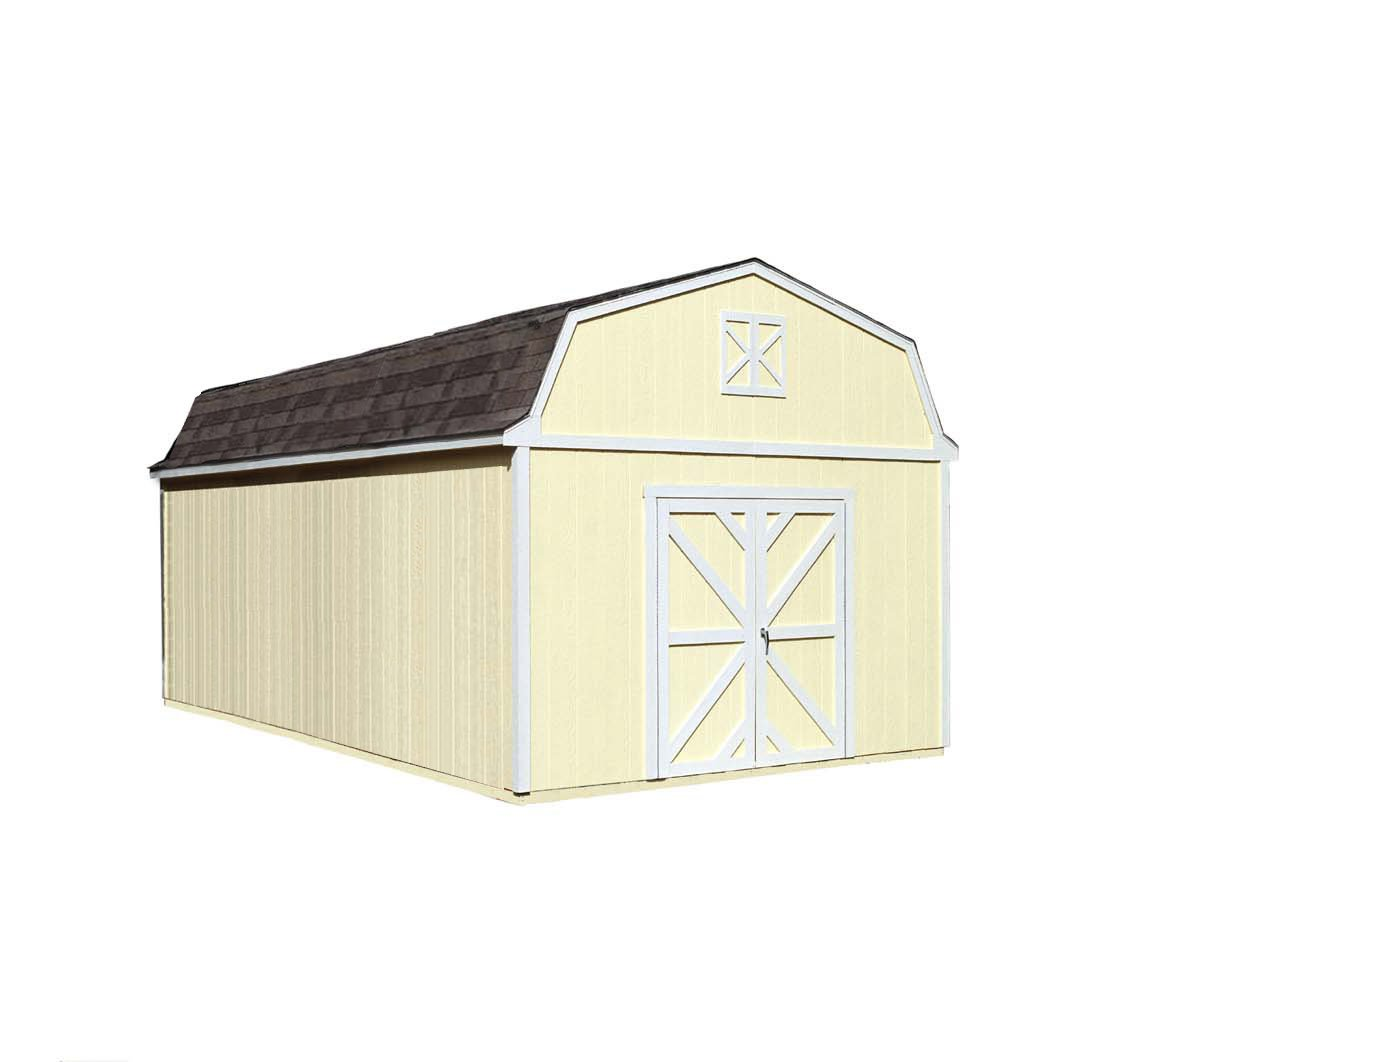 cabins cheap x kits shed wonderful of barn cottages att mini ideas wood cabin sheds plans photo storage